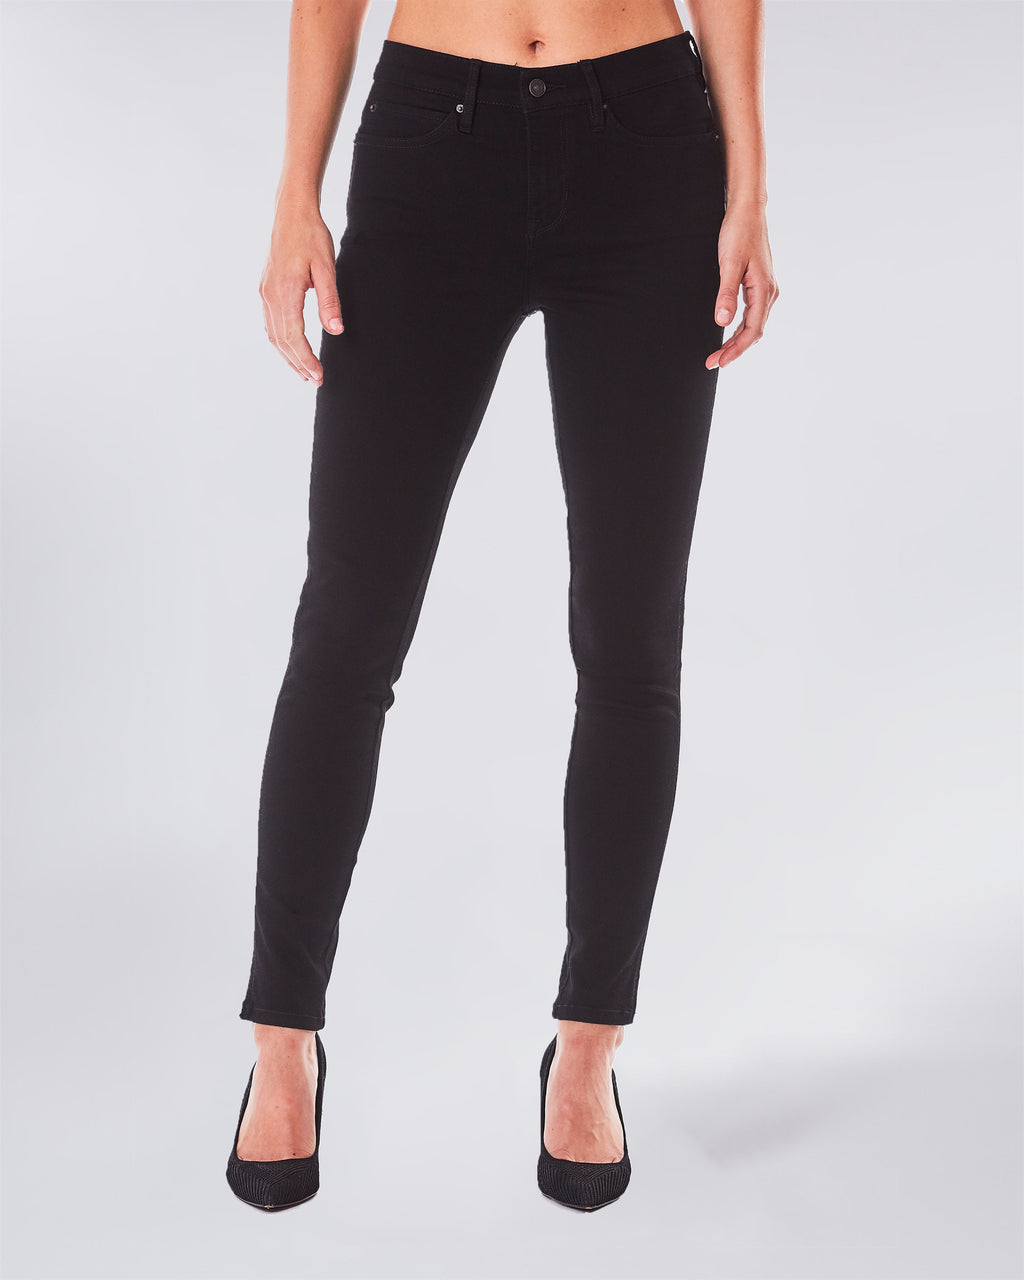 NJ0162S - SOHO HIGH RISE SKINNY - bottoms - denim - This skinny high rise jean is a classic and extremely flattering on every body type. Complete with Lyrca Beauty.